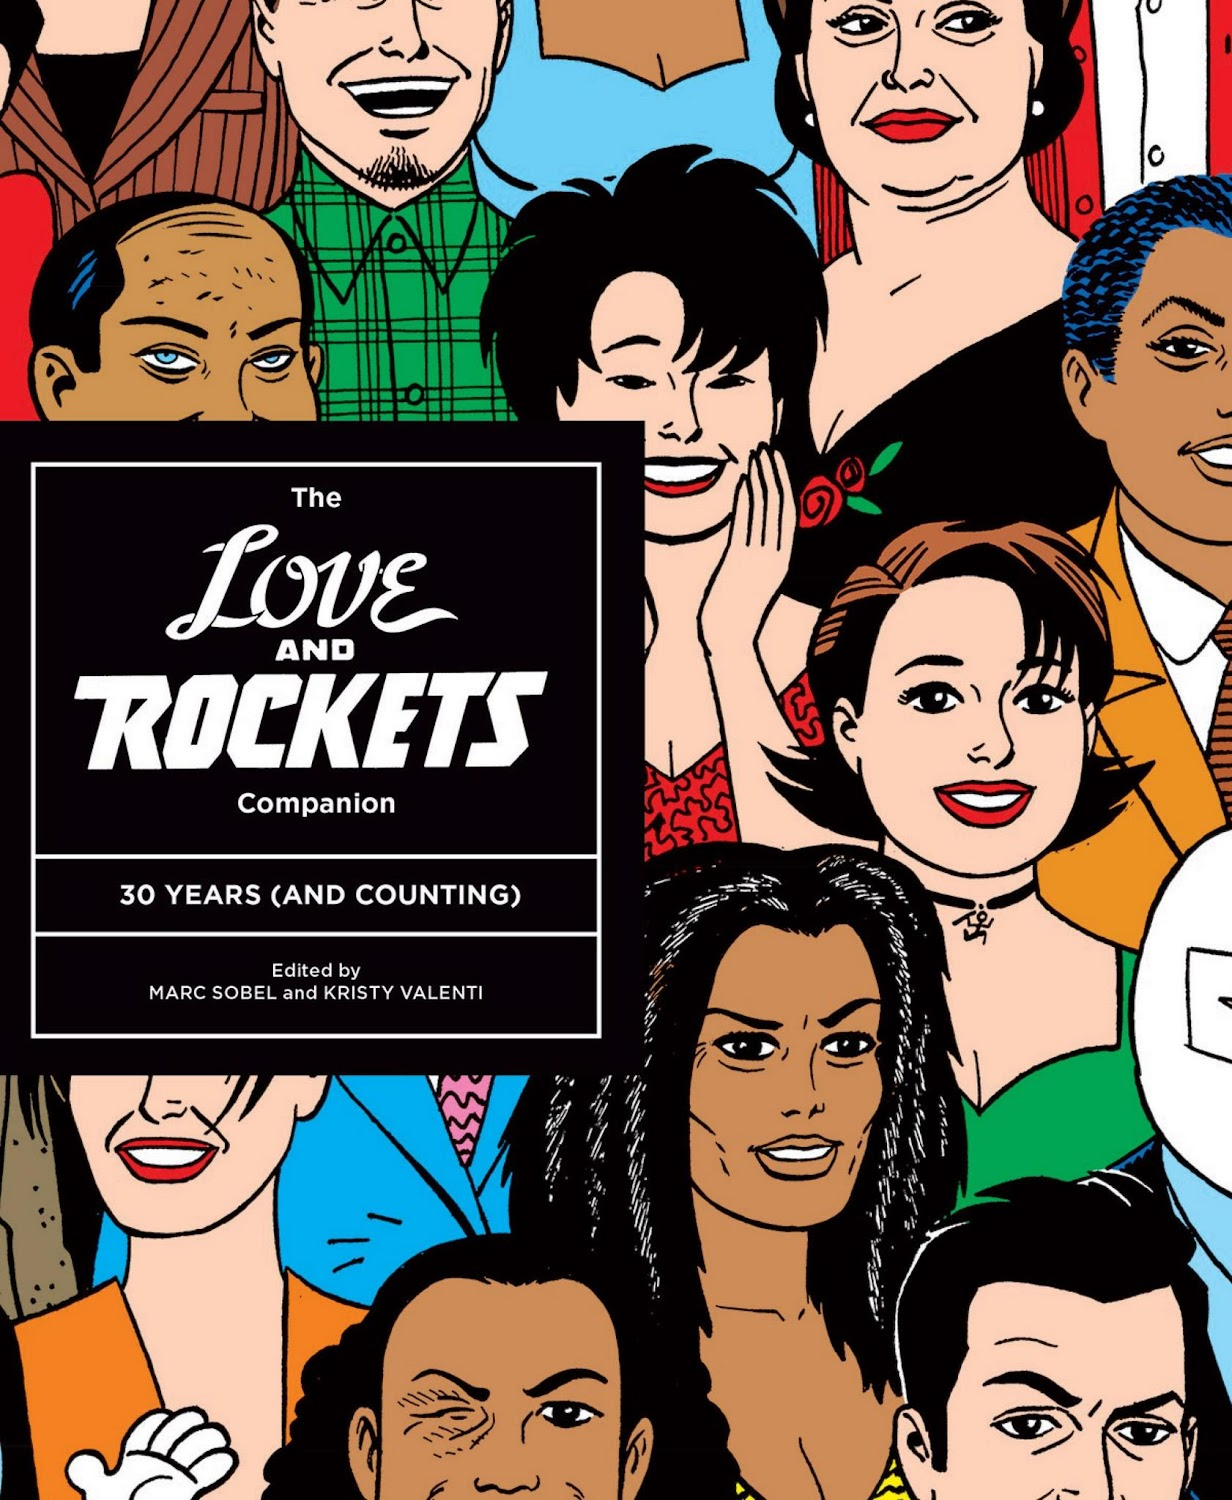 The Love and Rockets Companion: 30 Years (And Counting) (2013)